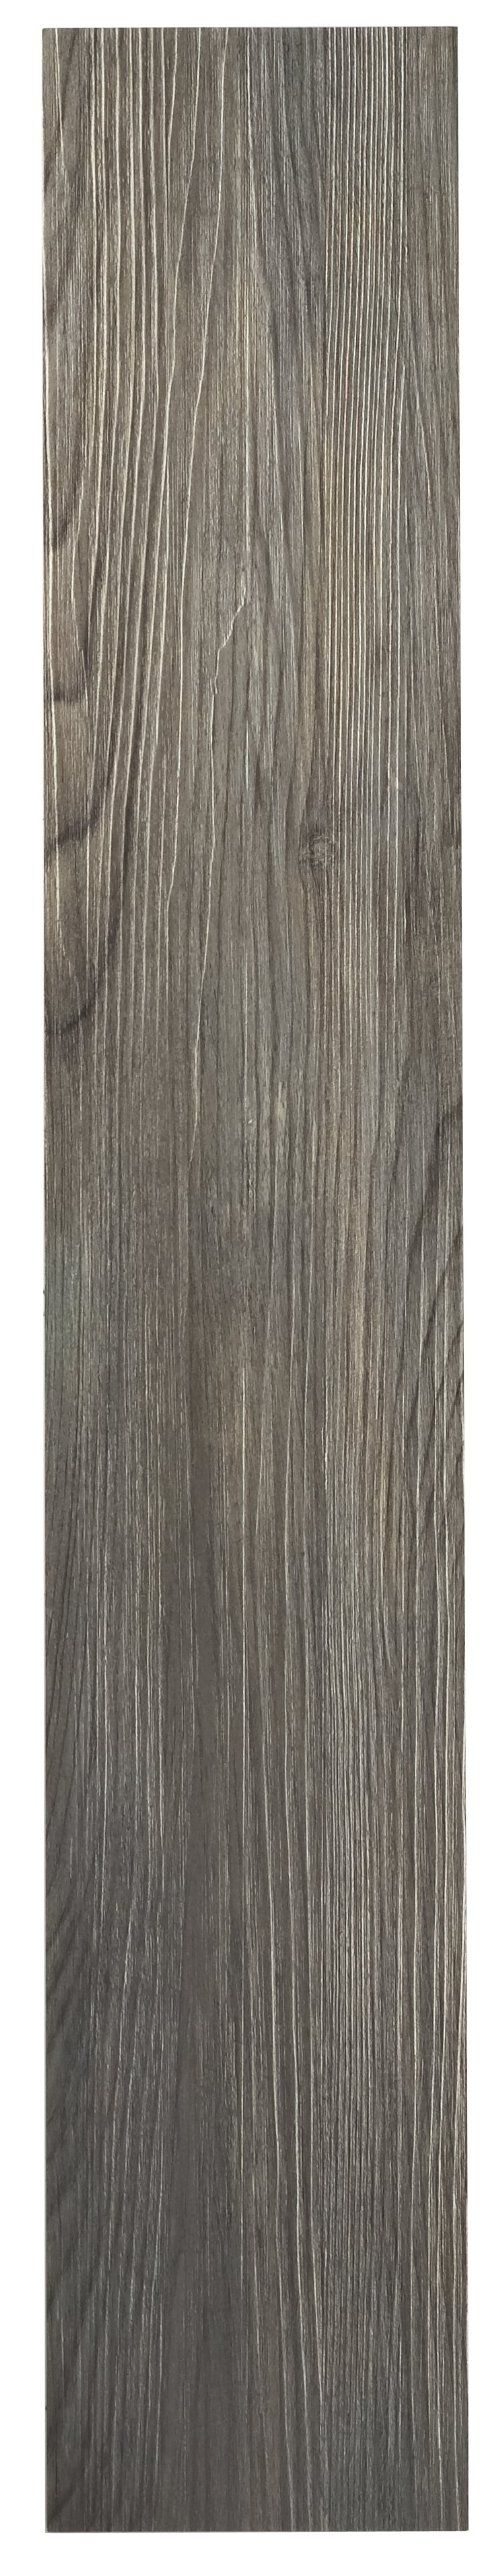 Best 25 vinyl floor covering ideas on pinterest vinyl flooring achim home furnishings vfp20ss10 3 foot by 6 inch tivoli ii vinyl vinyl floor coveringvinyl flooringvinyl dailygadgetfo Gallery